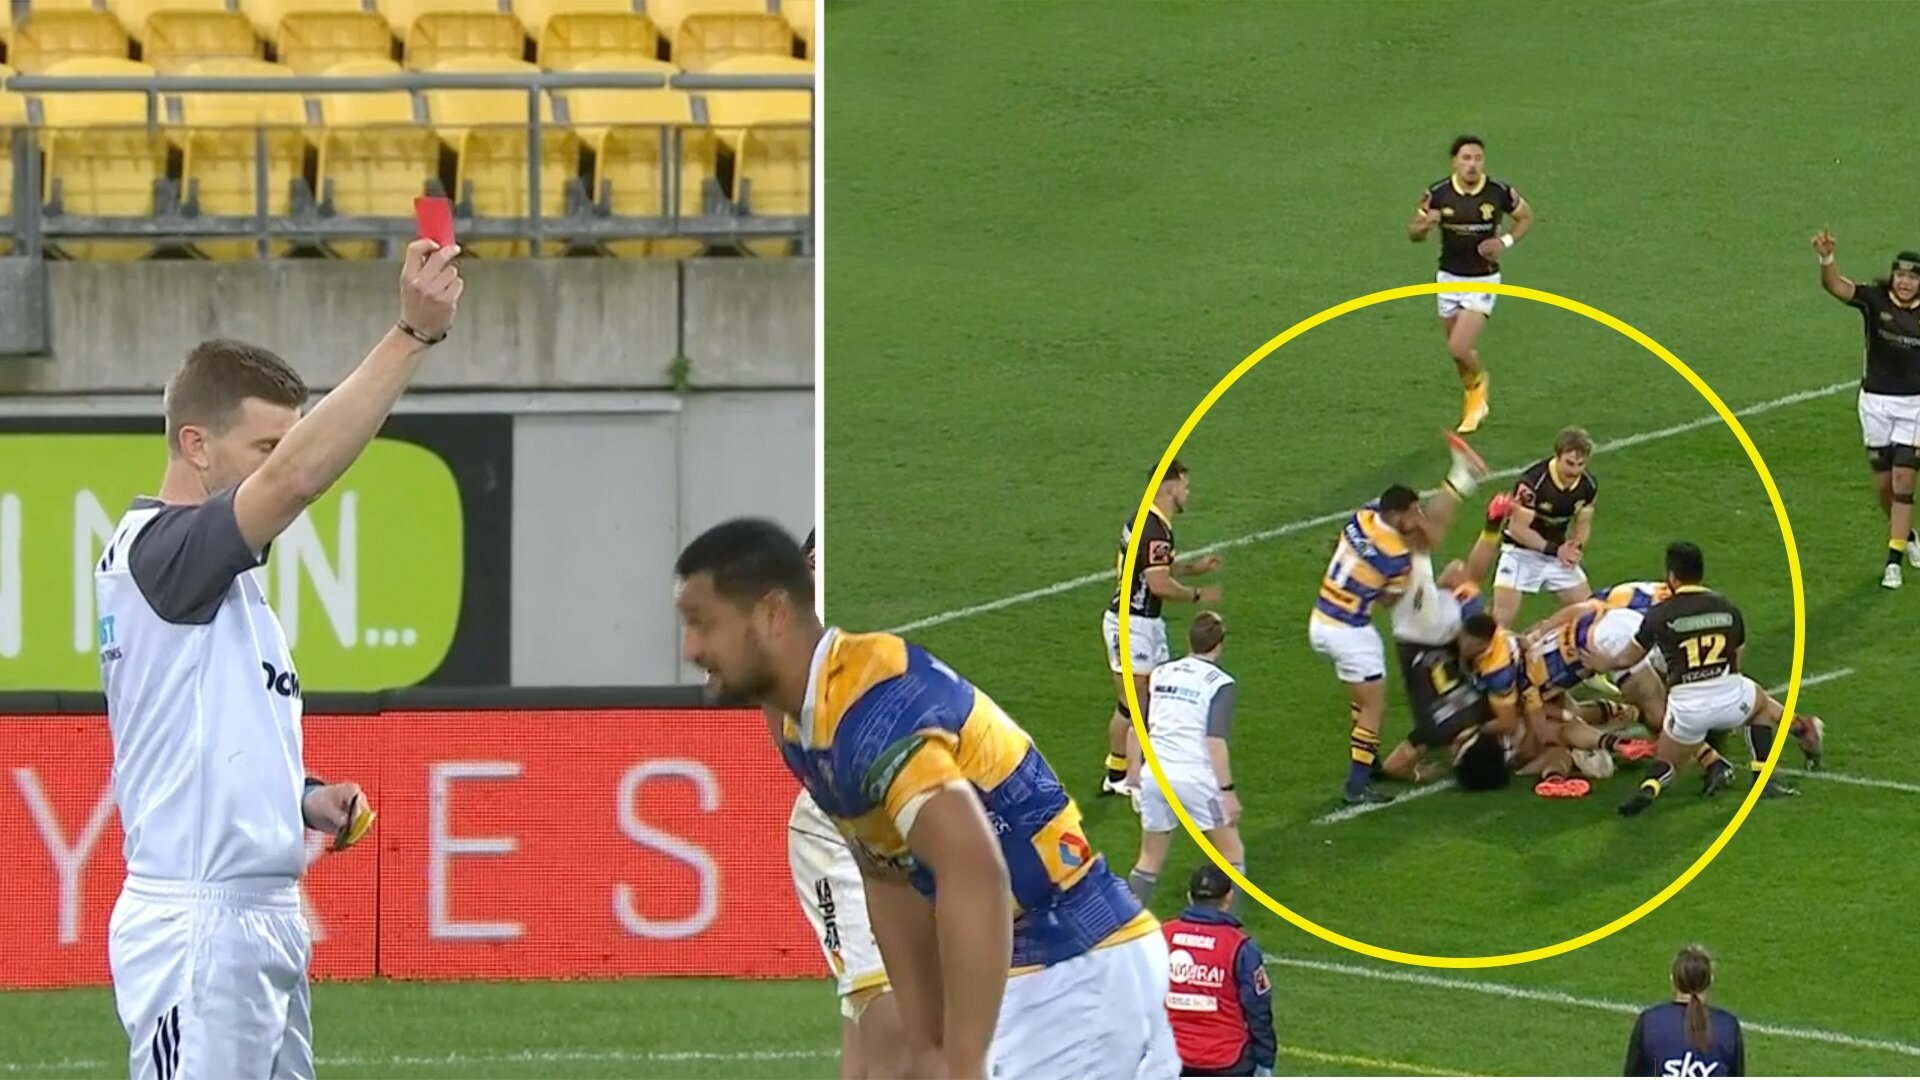 Fans stunned after revolting clear out tackle in yesterday's Mitre 10 clash